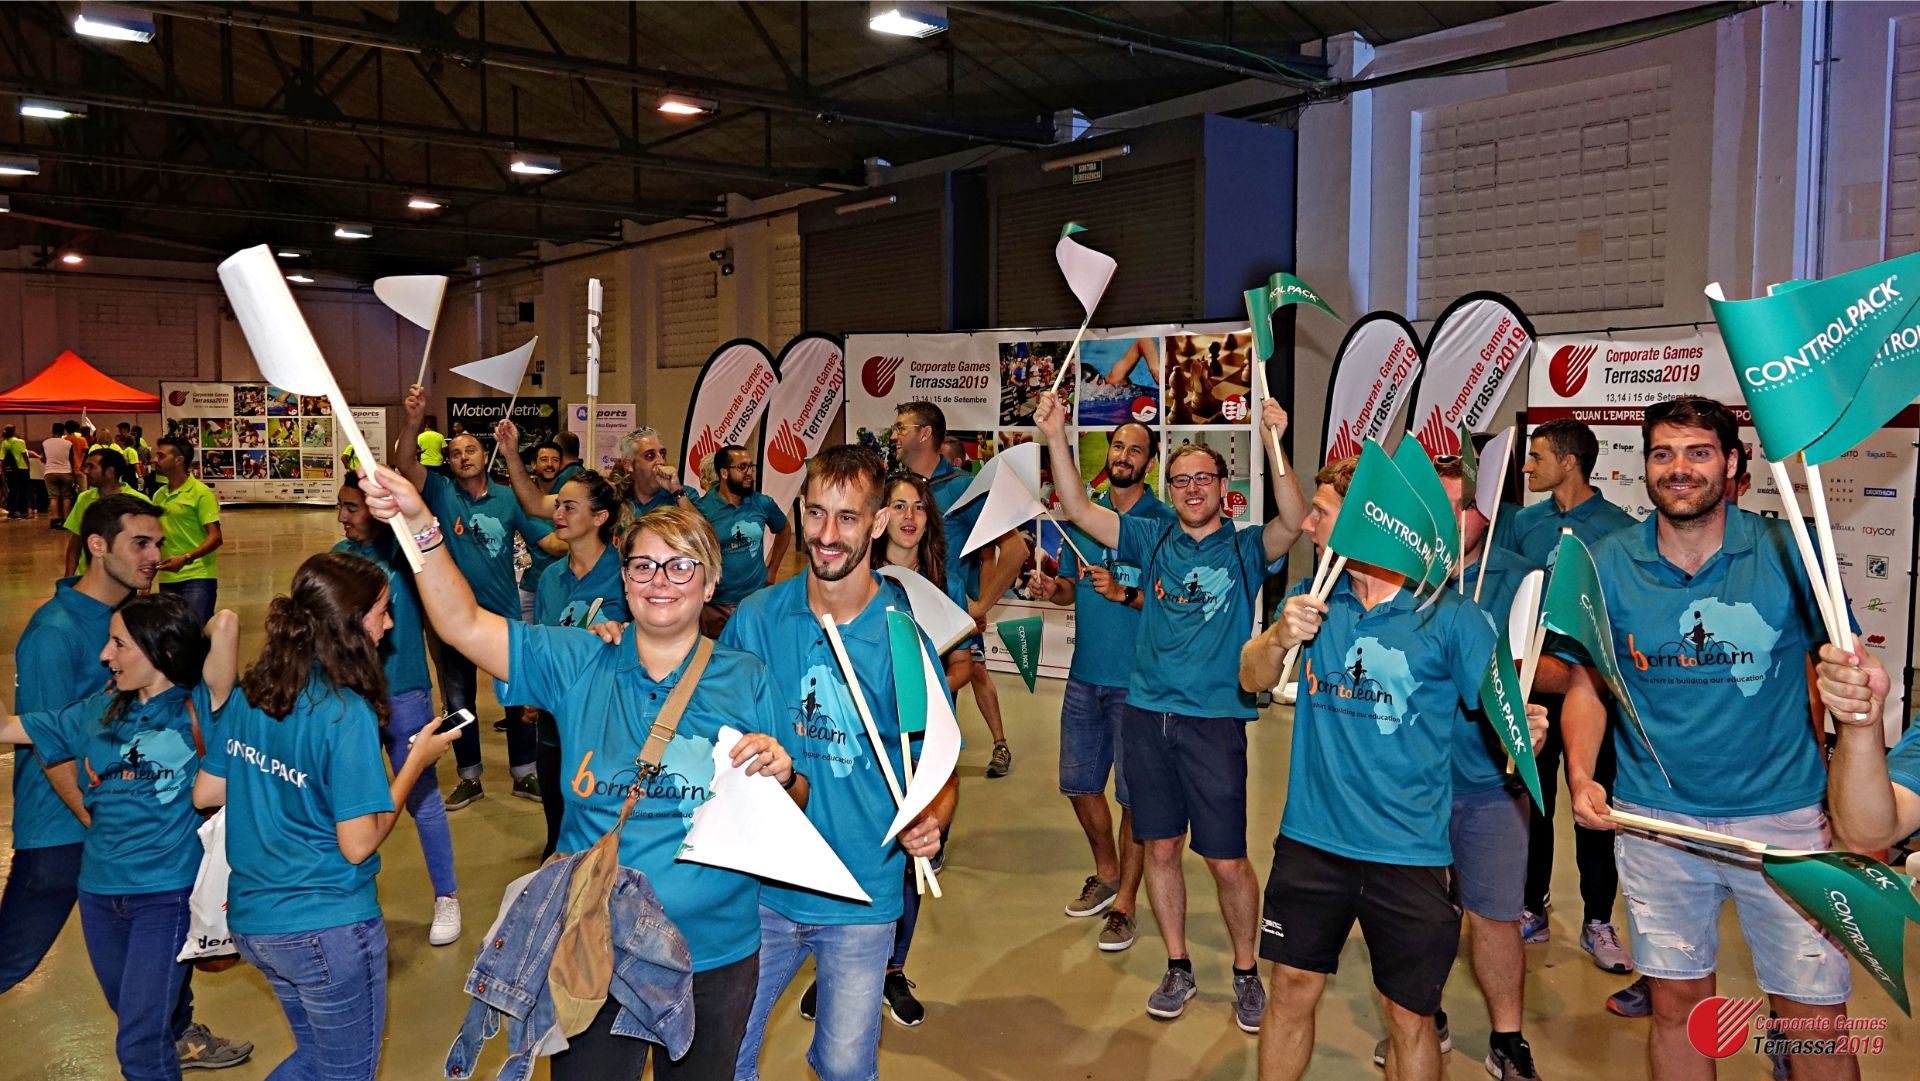 CORPORATE GAMES TERRASSA 2019-PARTY-00843